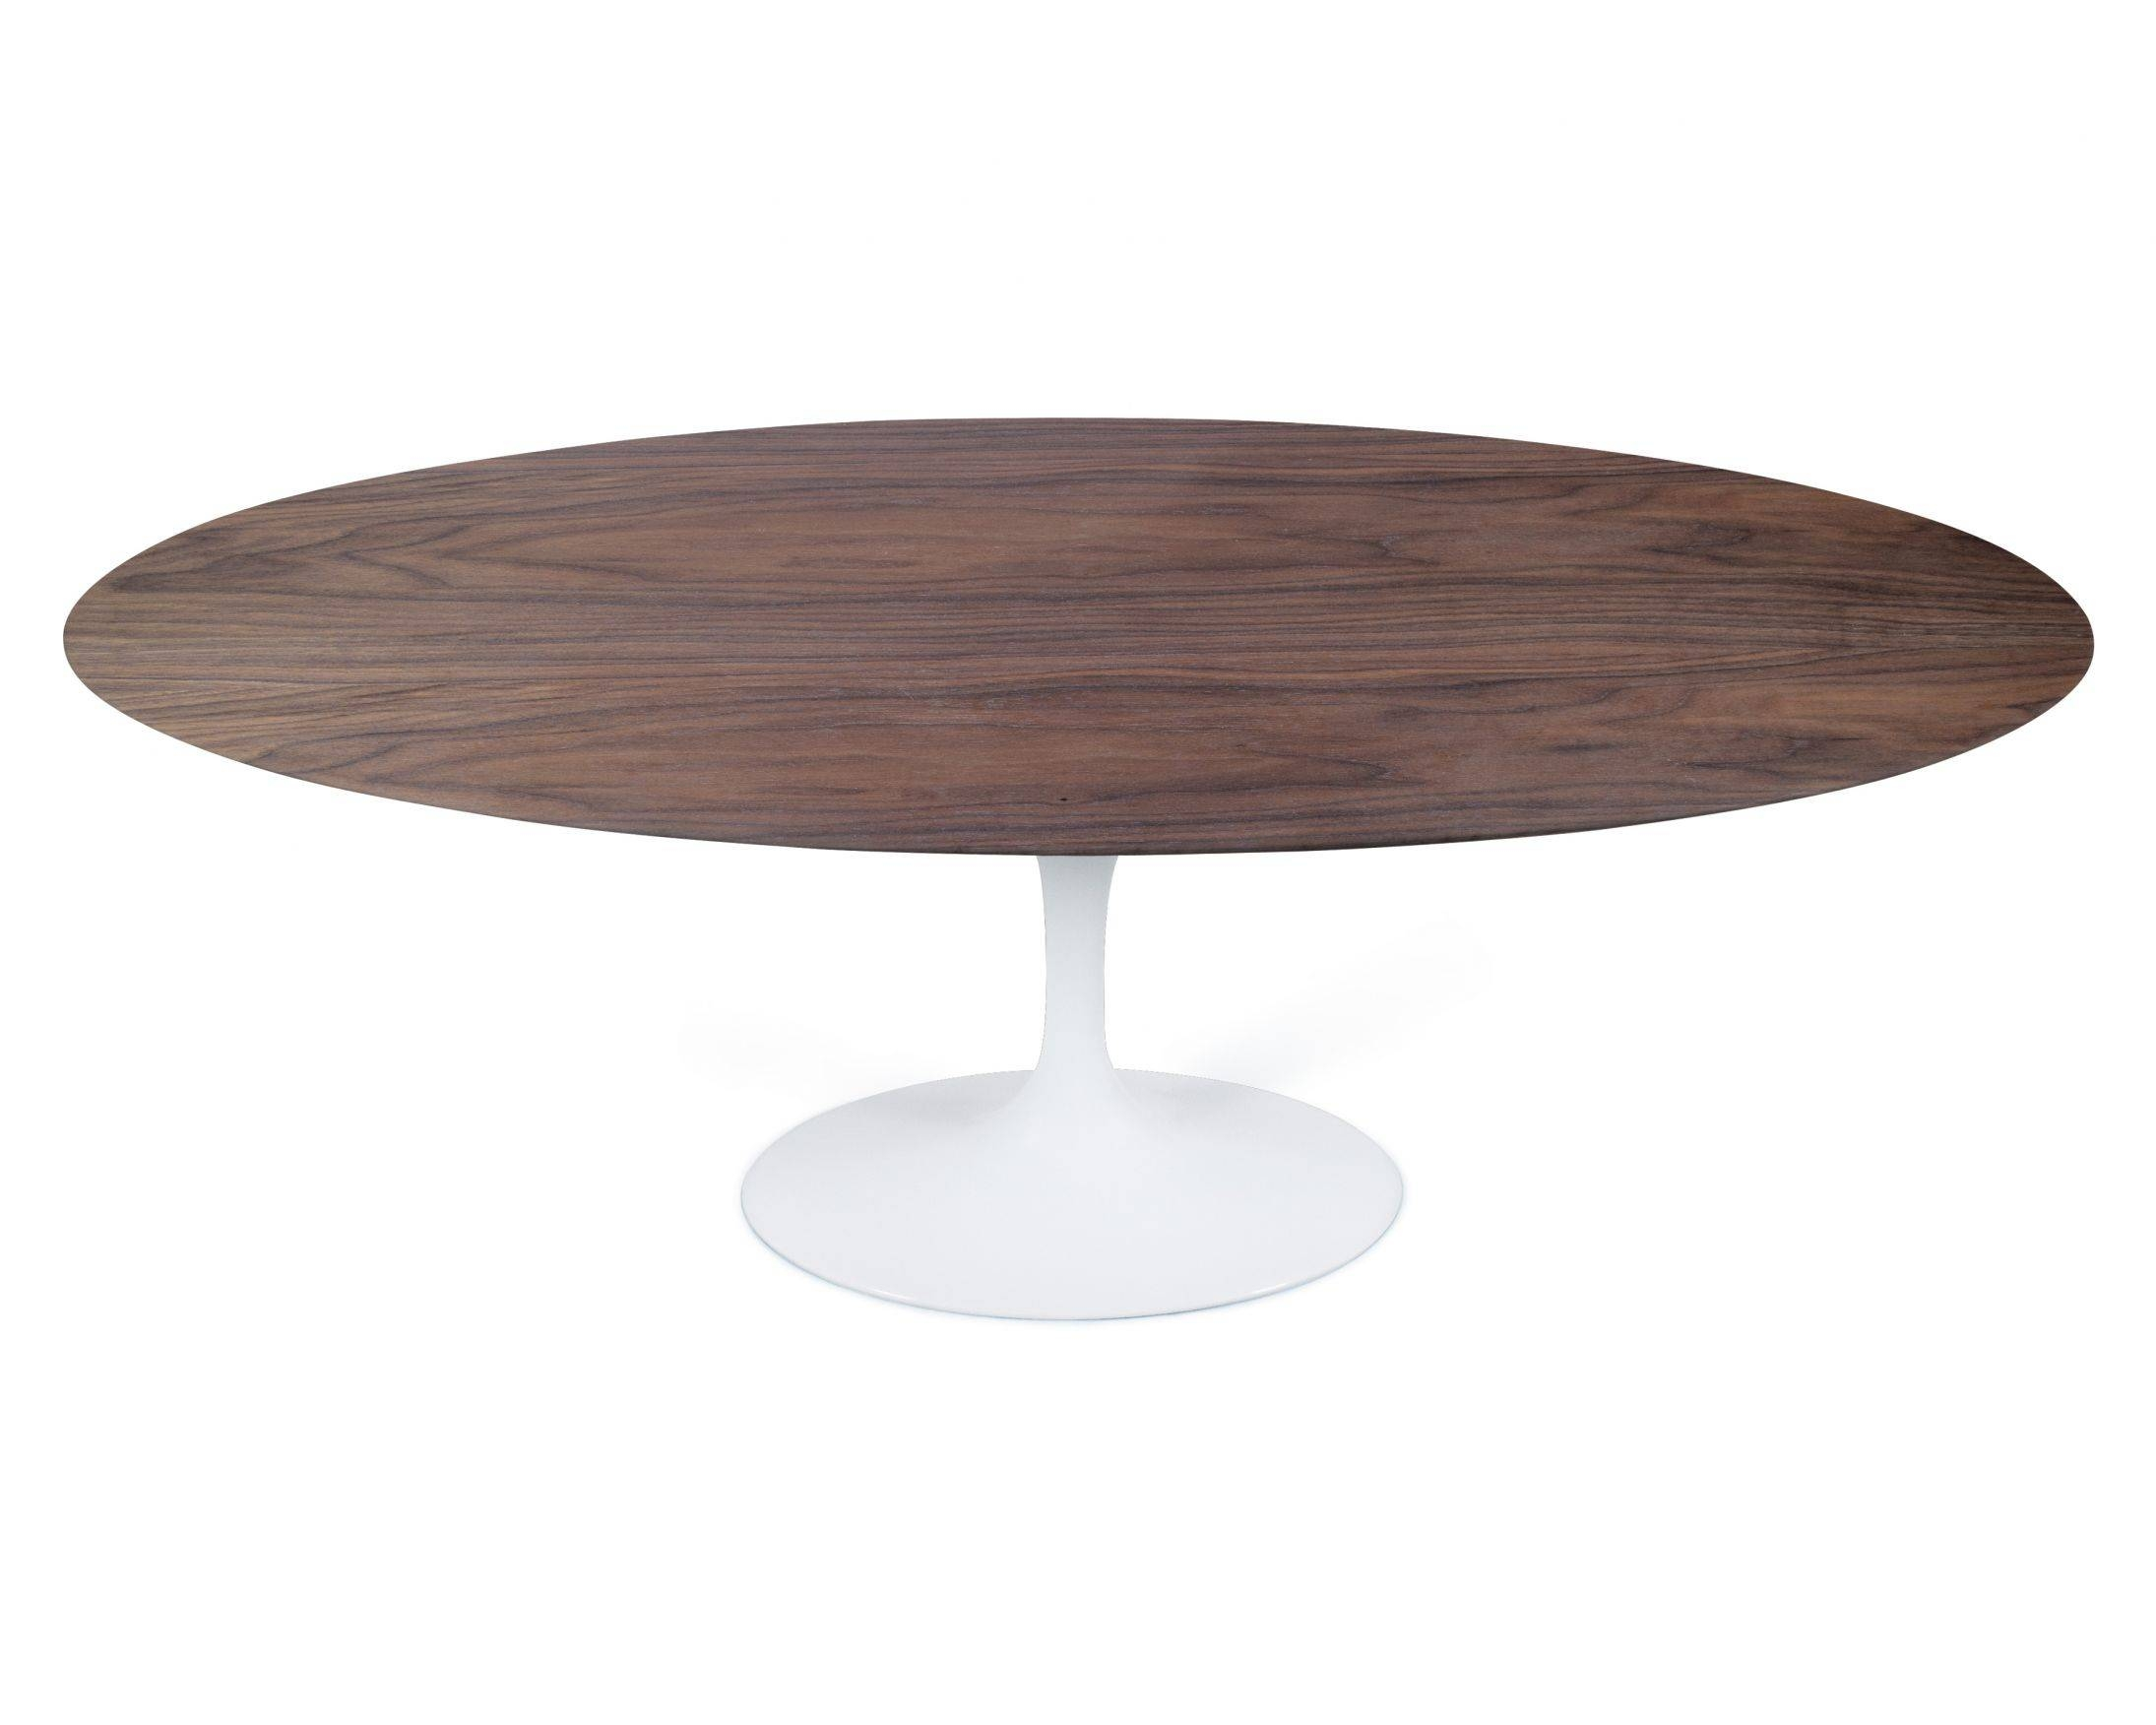 Oval Tulip Table - Wood | Reproduction | Rove Concepts inside Oval Walnut Coffee Tables (Image 22 of 30)